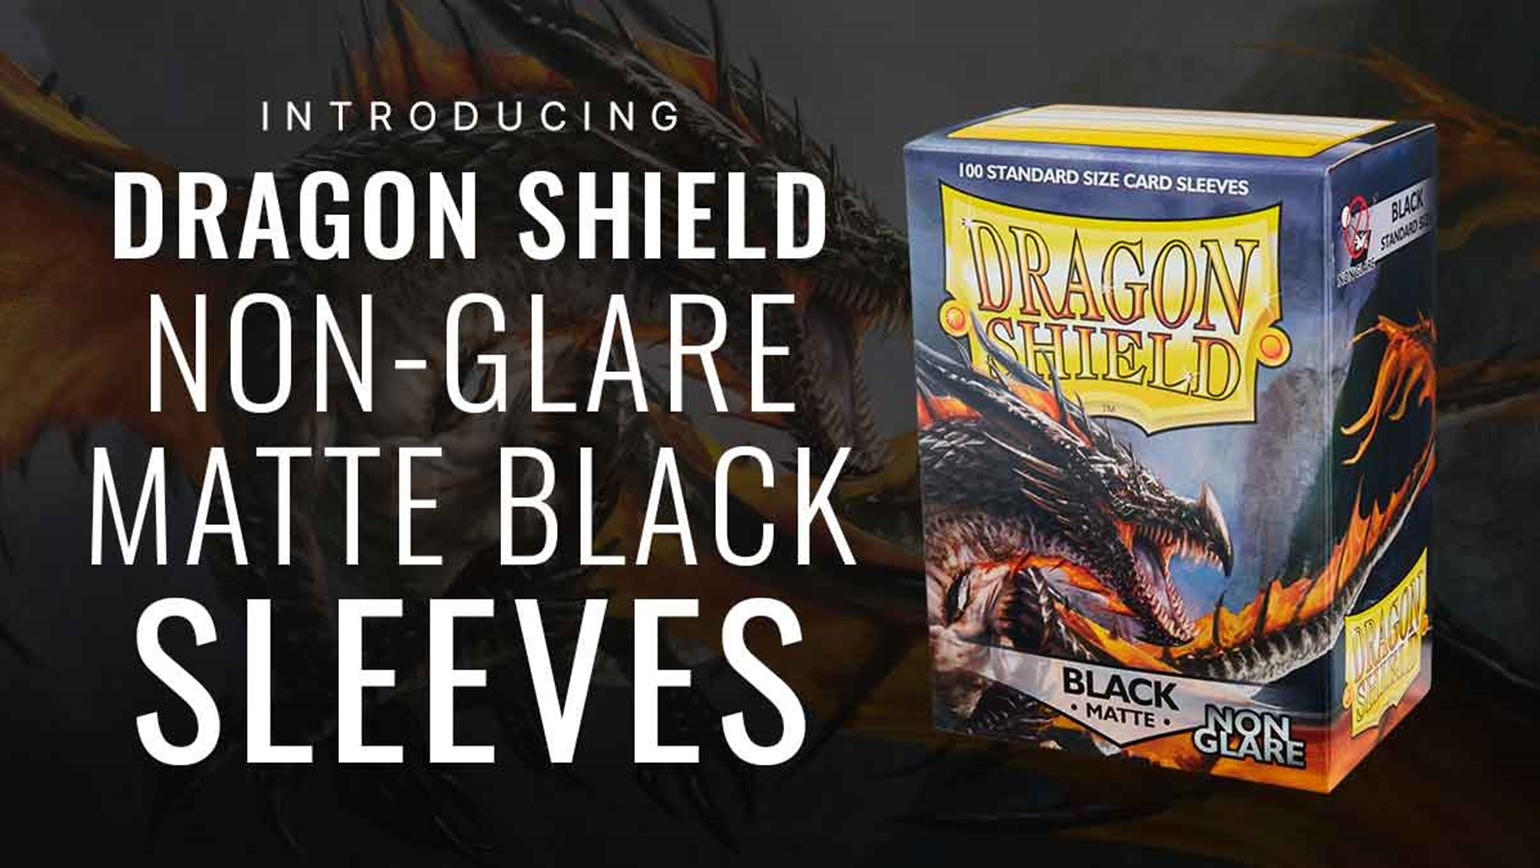 Dragon Shield Non-Glare Matte Black 'Amina' Sleeves Added to TCGplayer Catalog